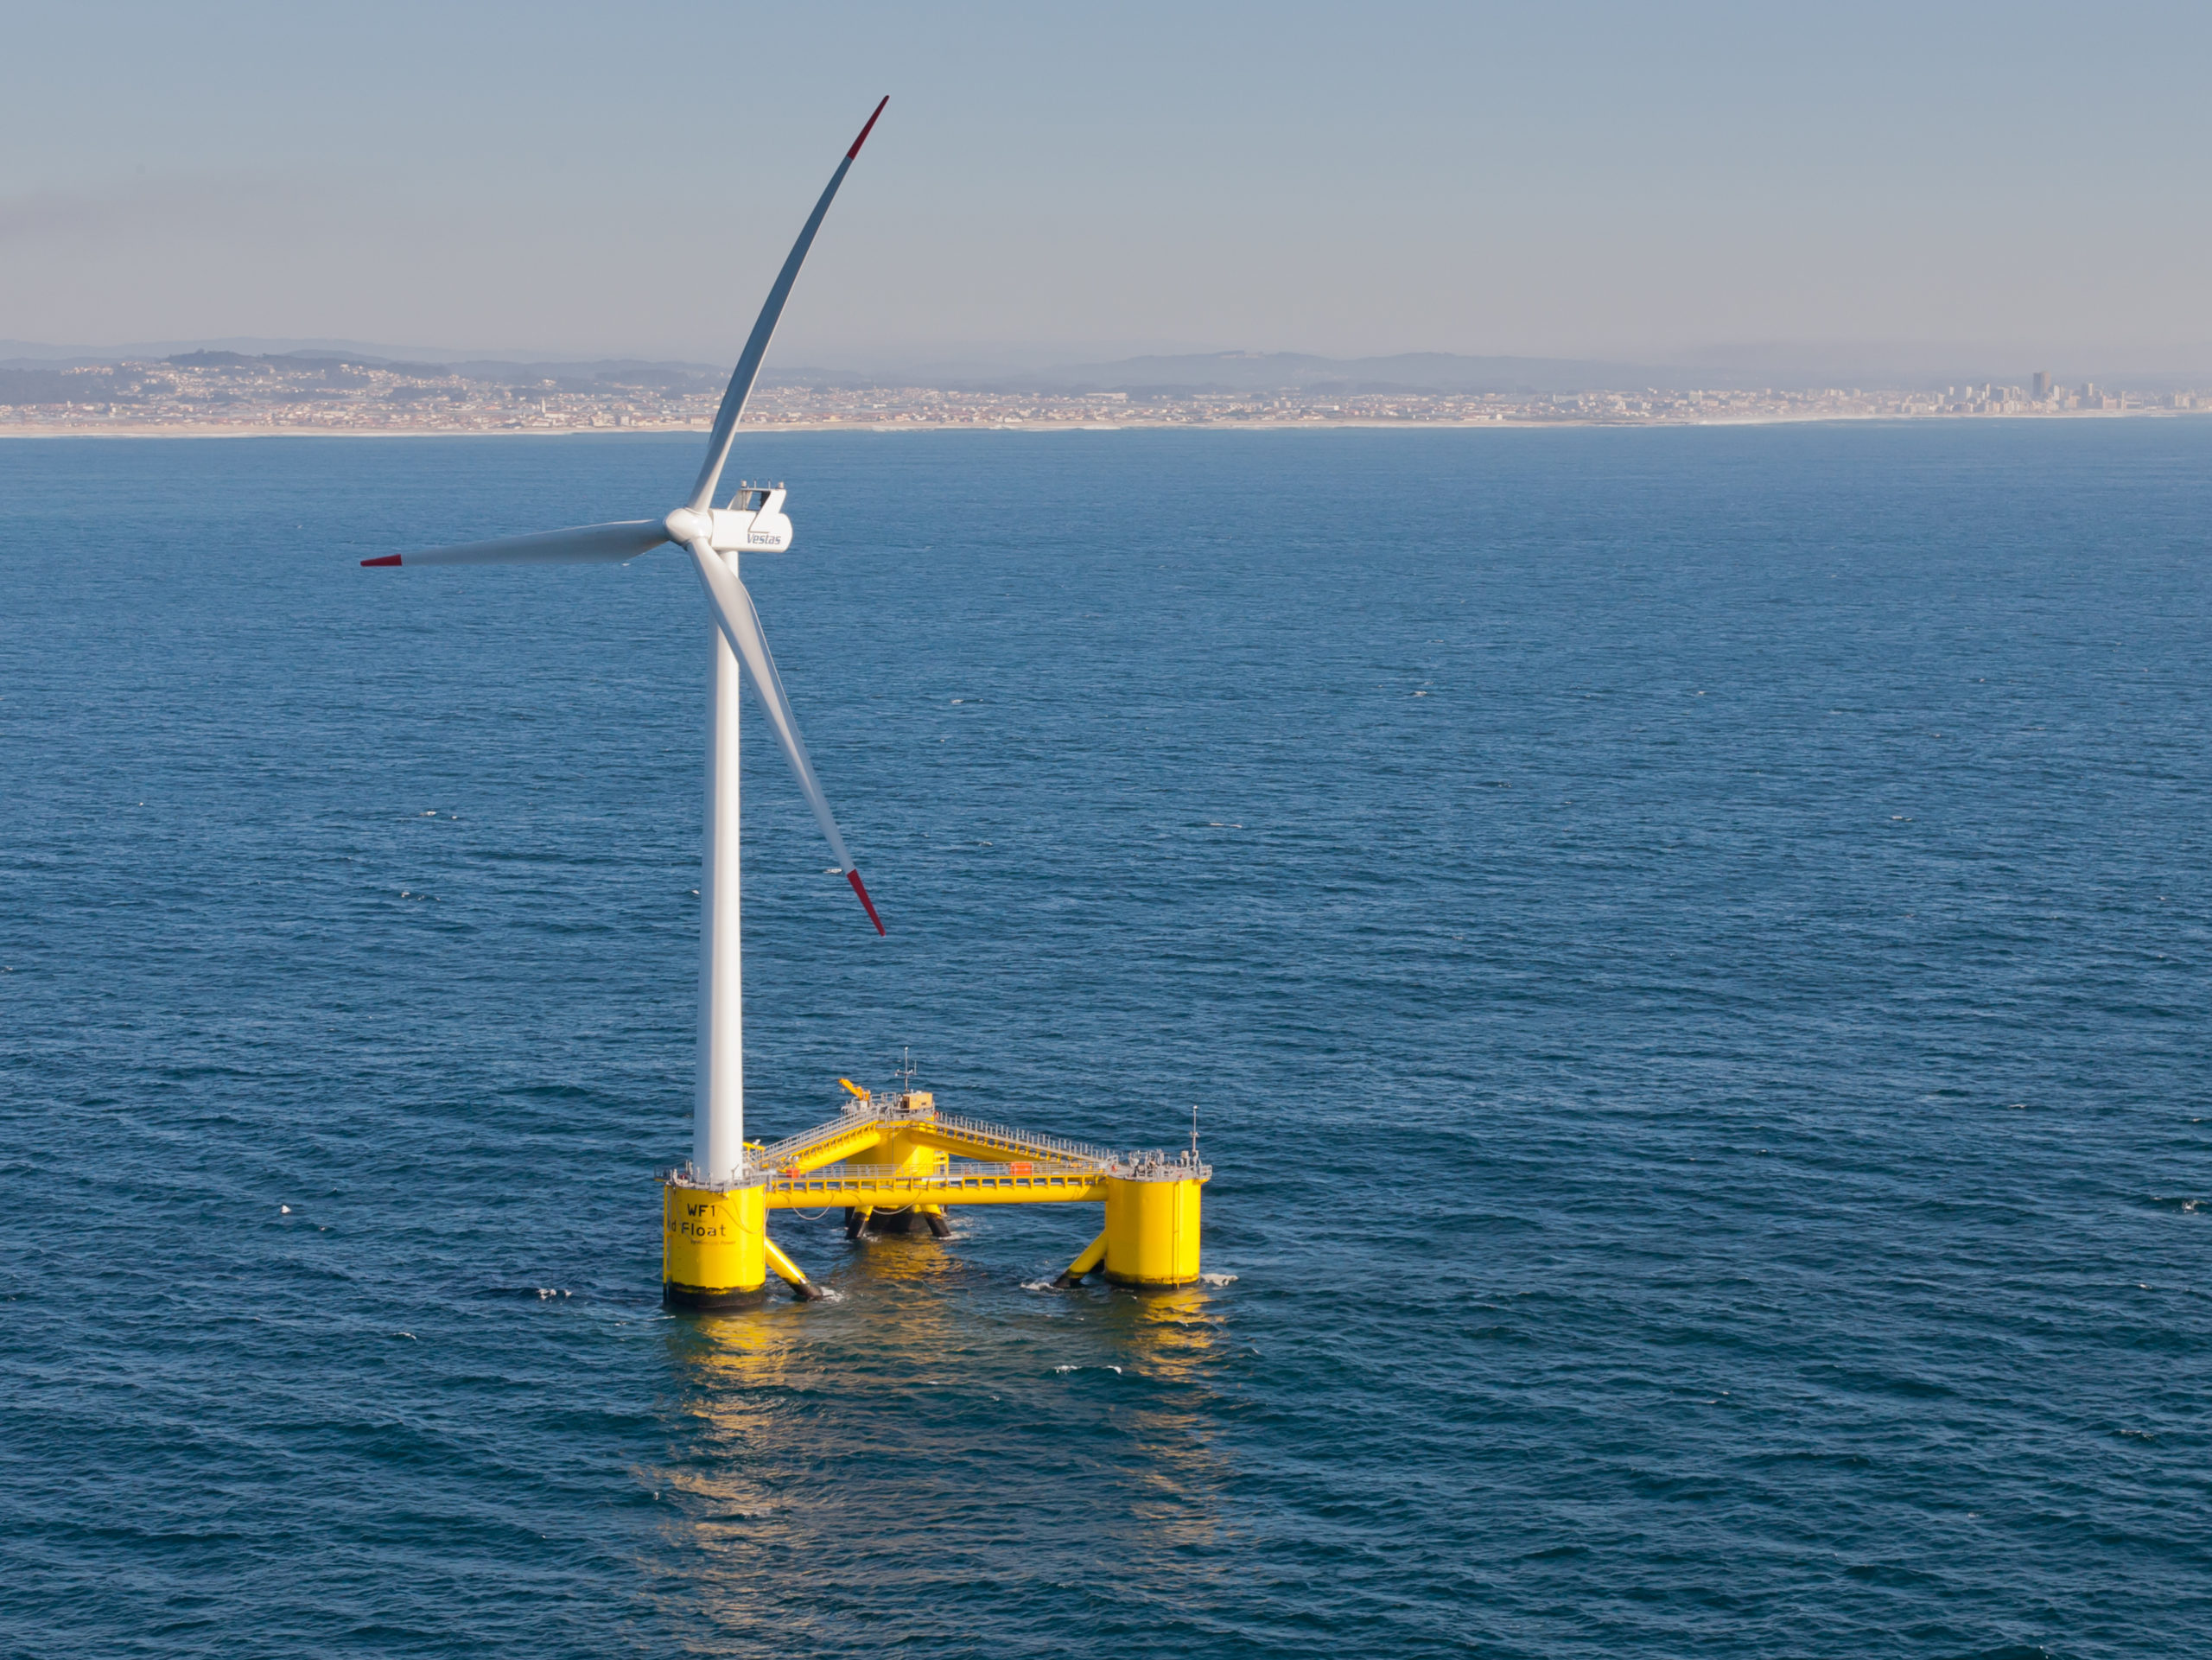 New research investigating challenges to floating wind expansion